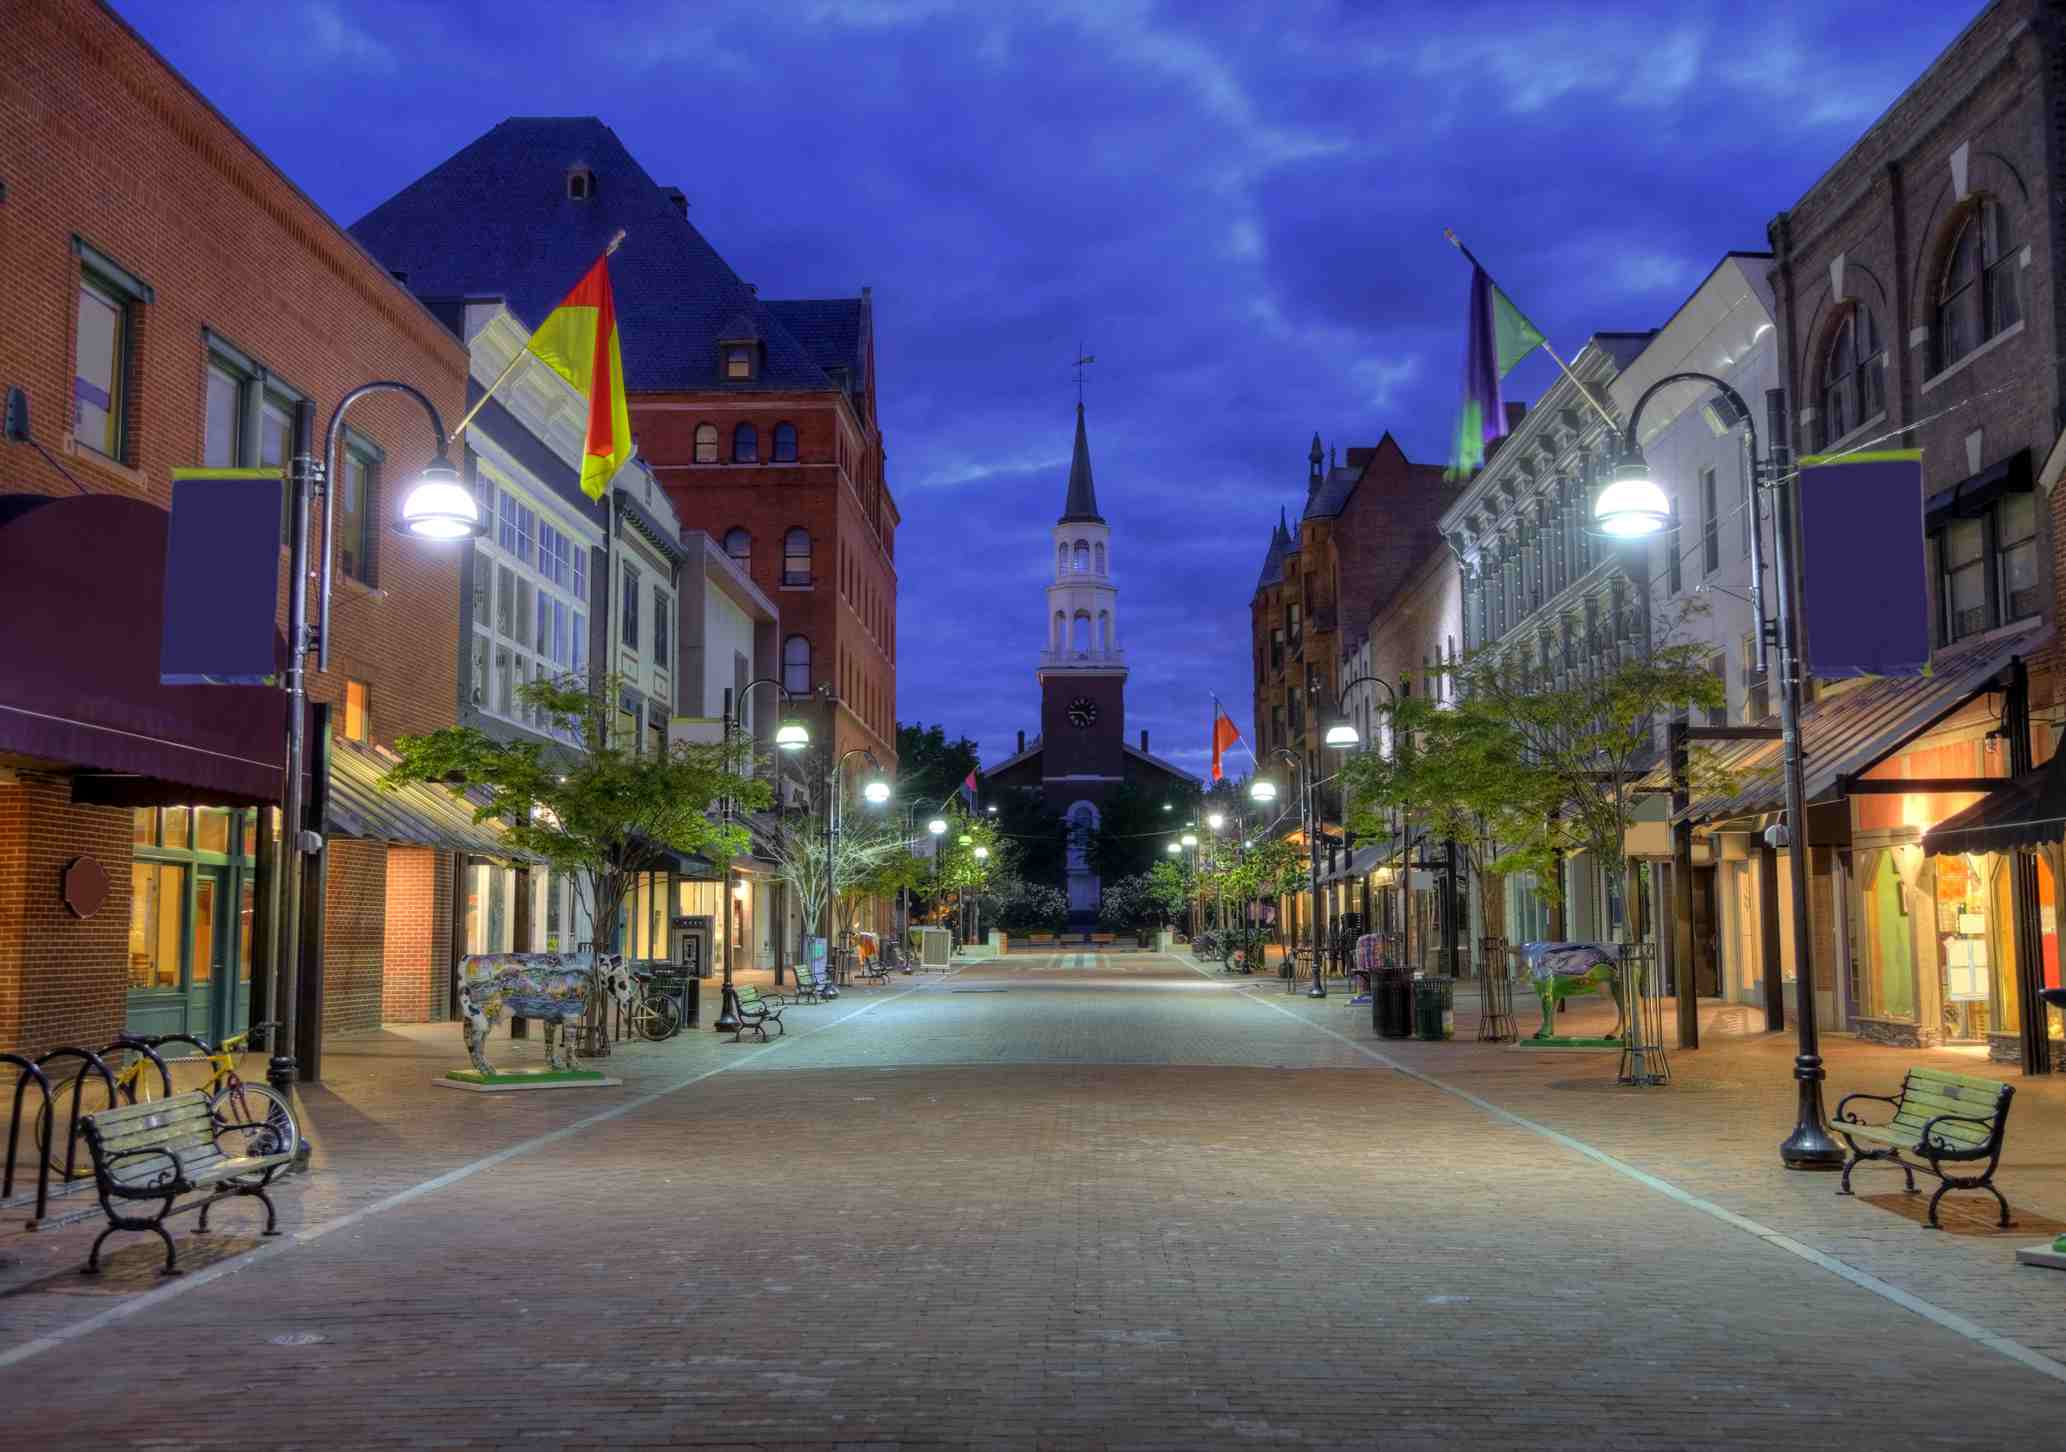 Church Street Marketplace in Burlington is lined with historic buildings, fountains, and a brick-paved pedestrian mall